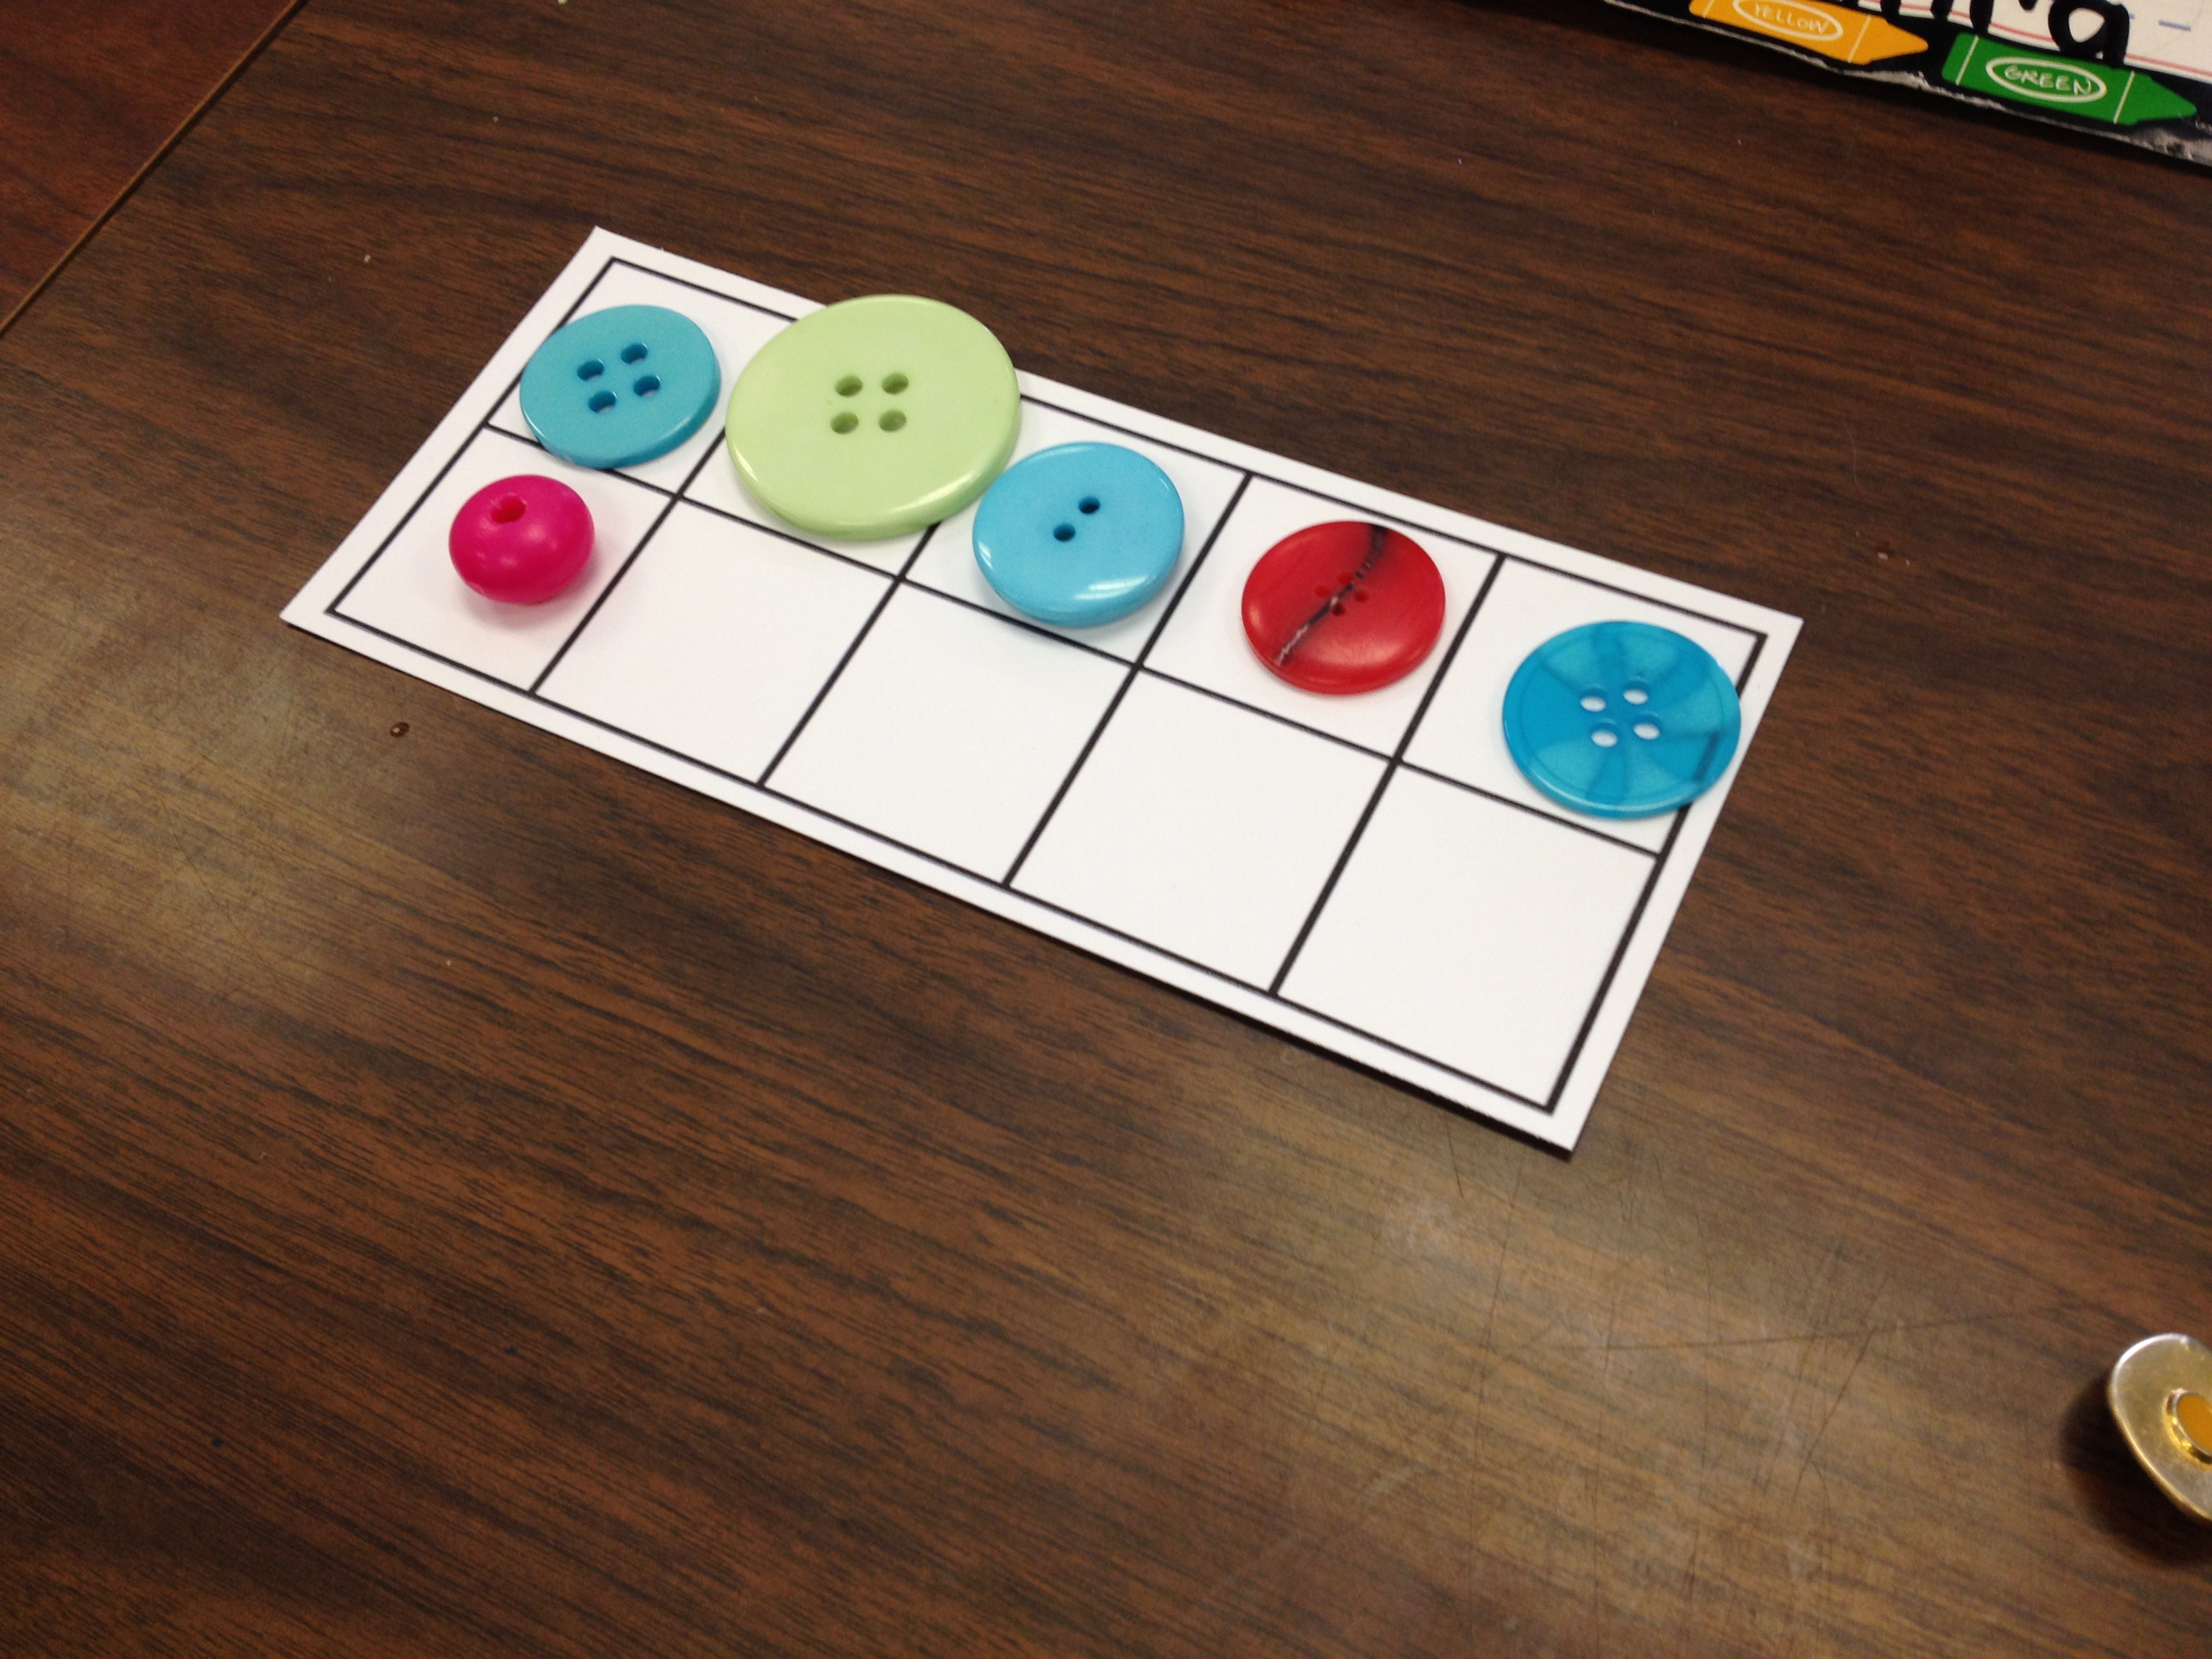 using the same ten frame mats and loose parts the students played roll it build it by rolling a regular dice simply they rolled the dice and then built